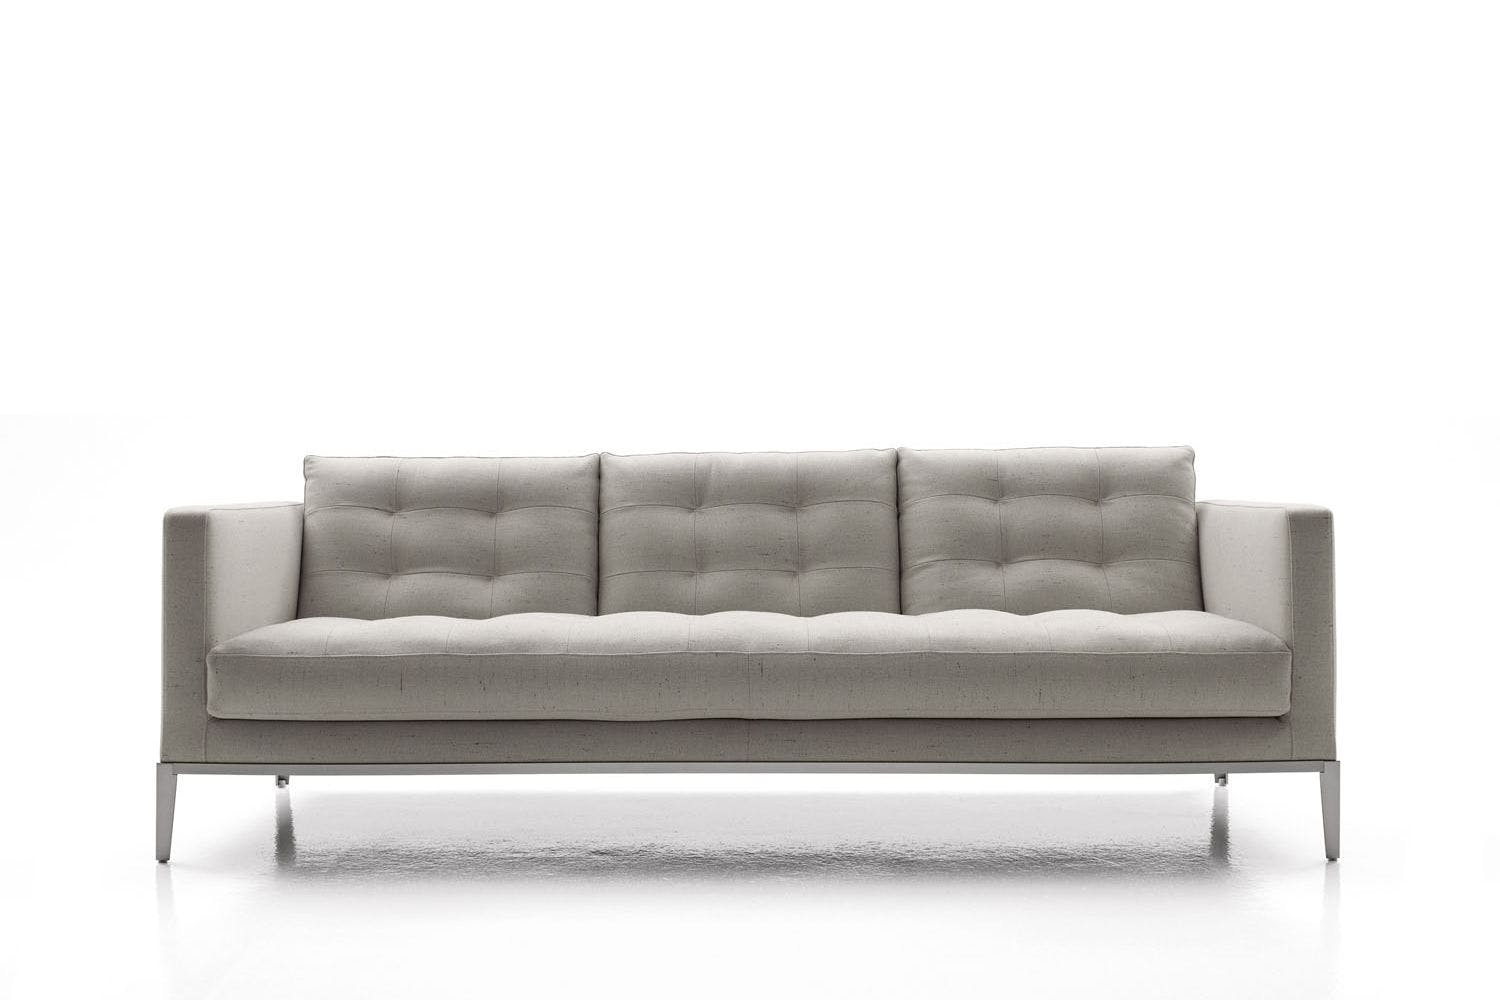 Ac lounge sofa by antonio citterio for b b italia project space furniture - Sofa gratis ...